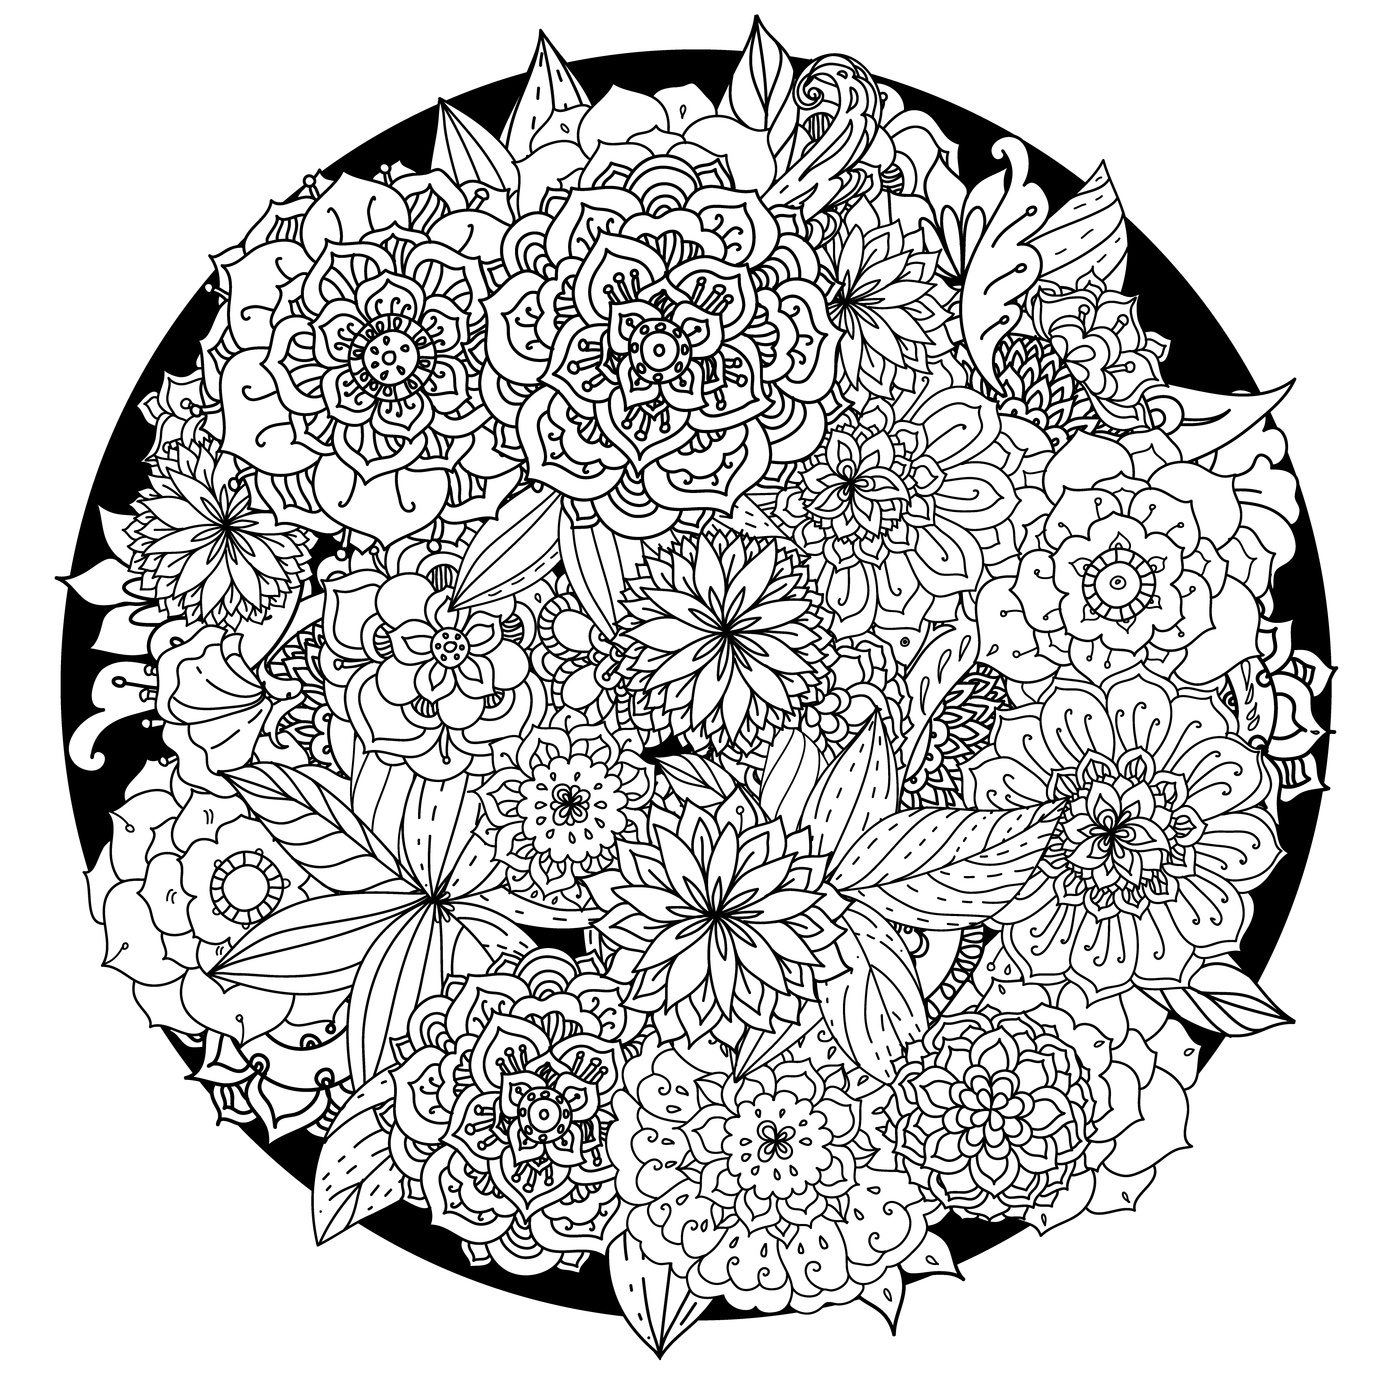 free printable mandalas for adults 20 free printable mandala coloring pages for adults printable mandalas for adults free